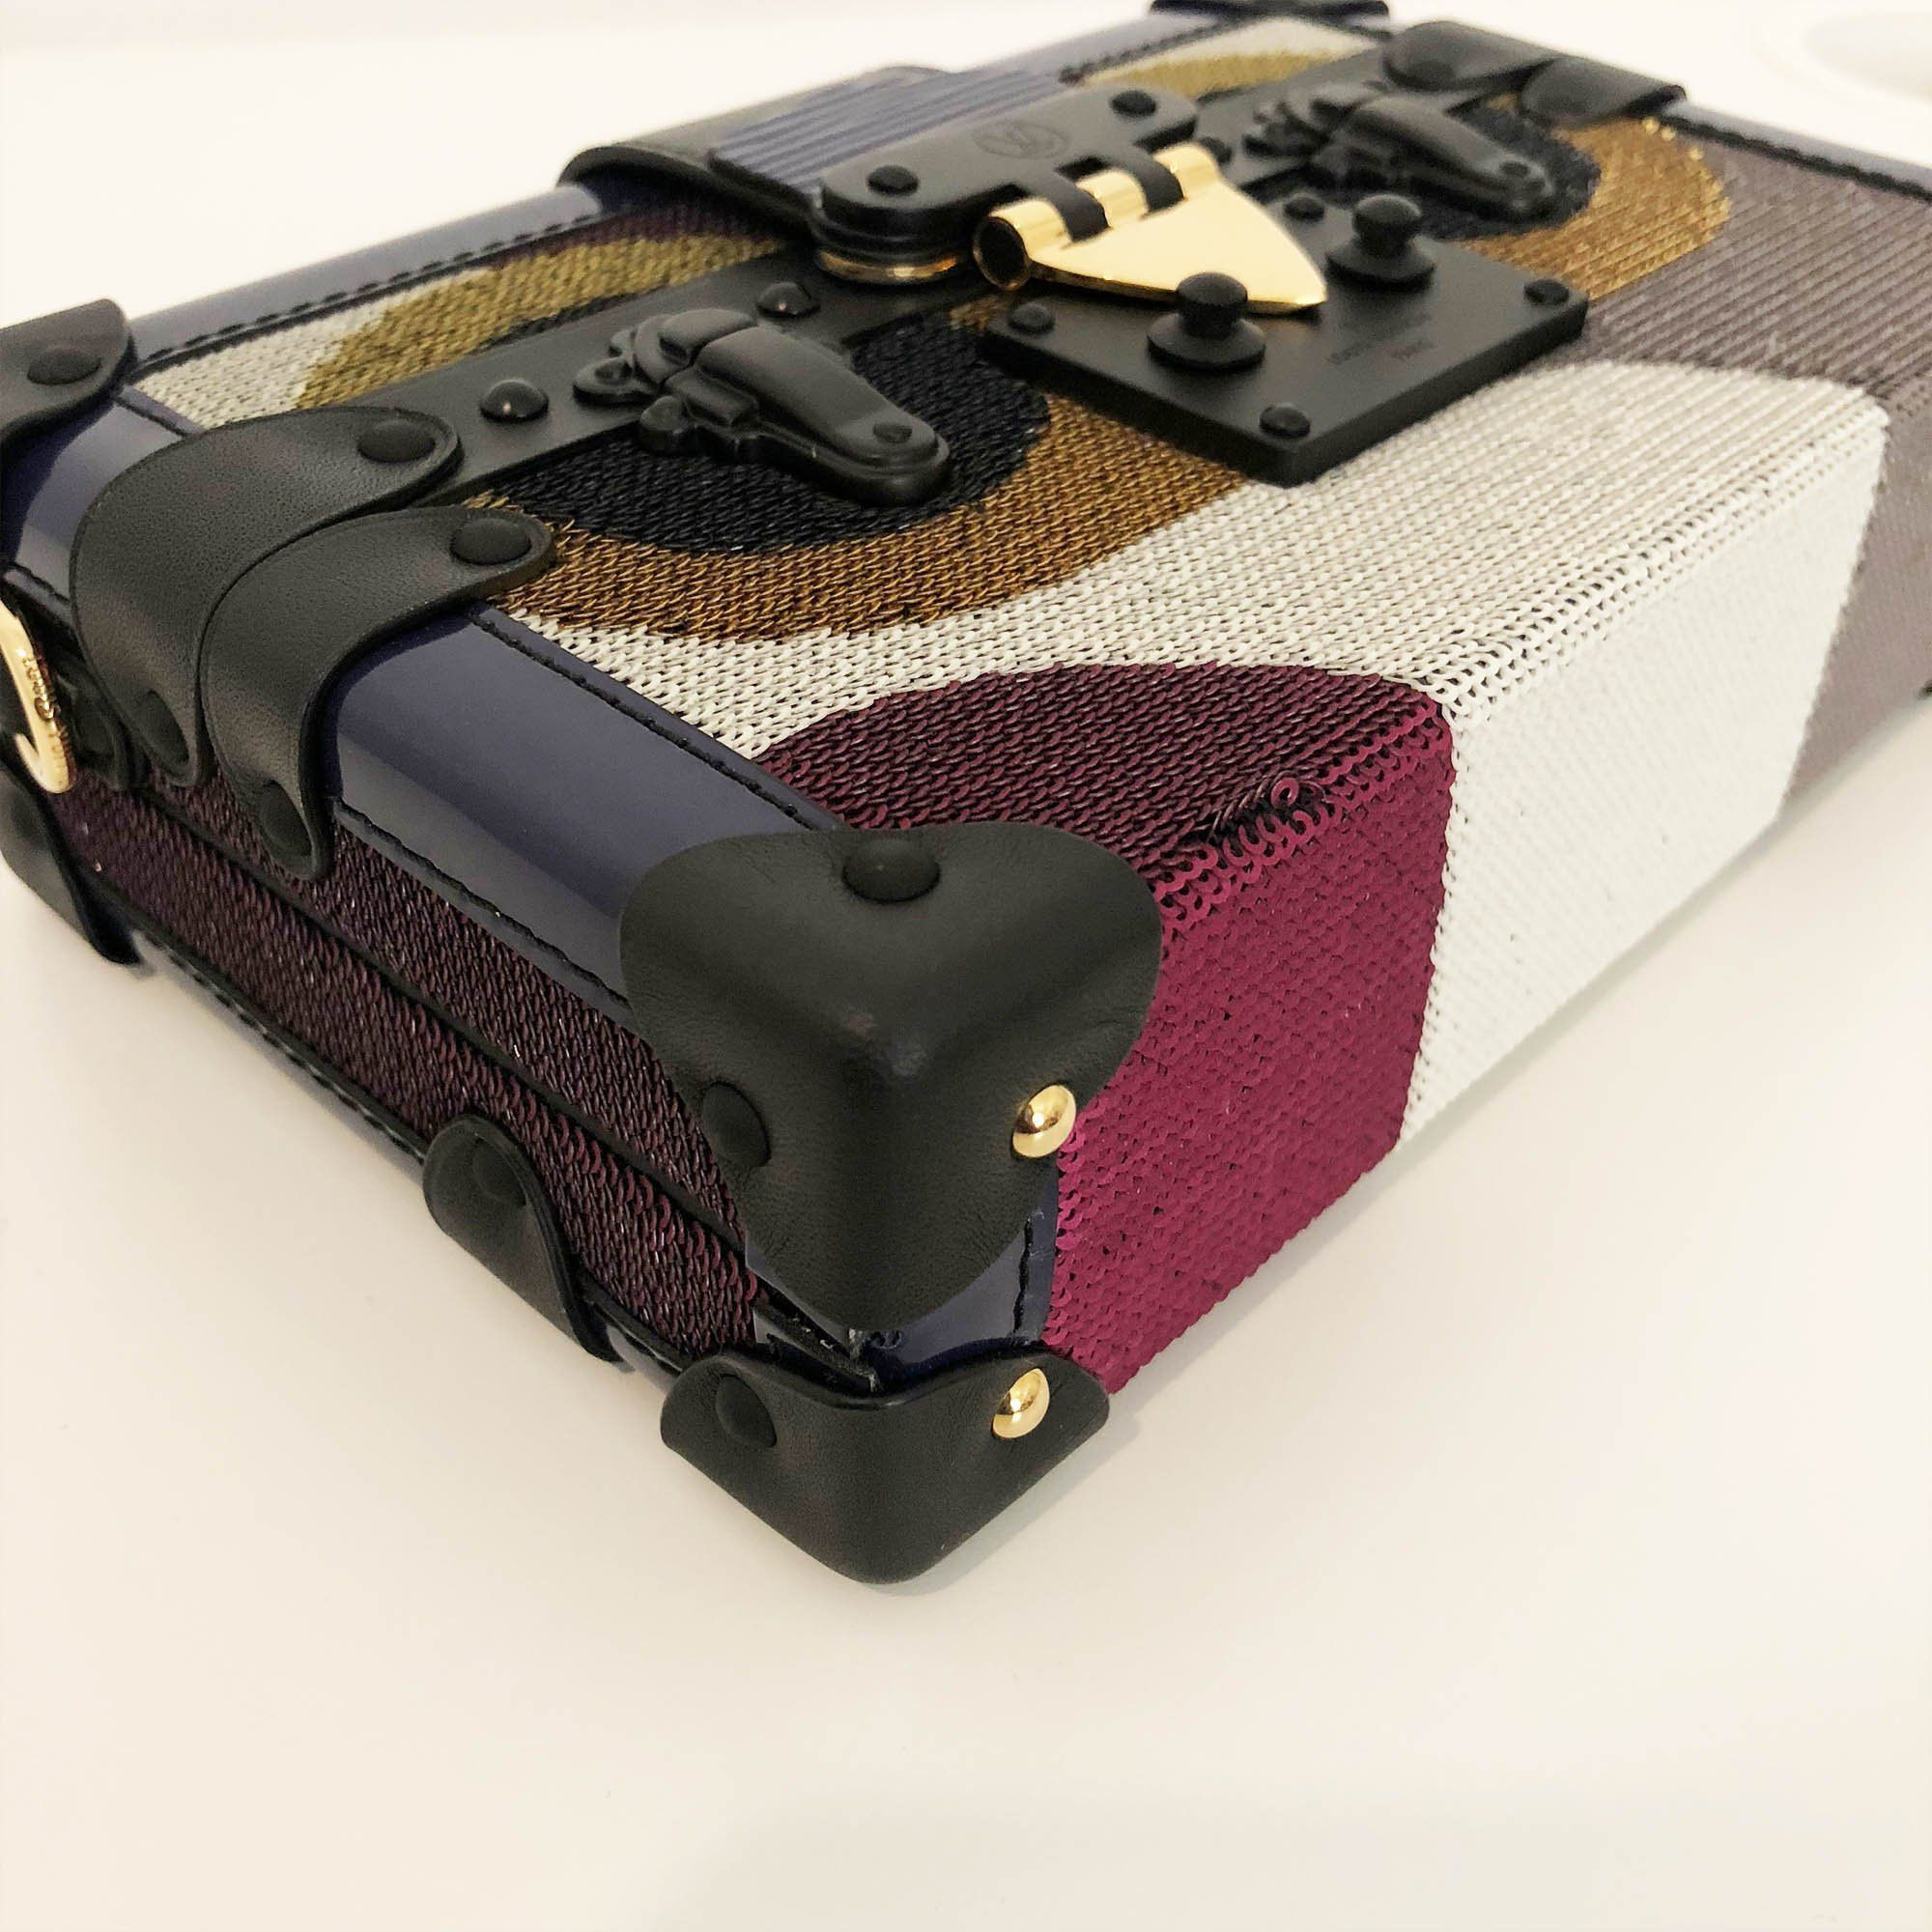 Louis Vuitton Petite Malle Night Bird Bag